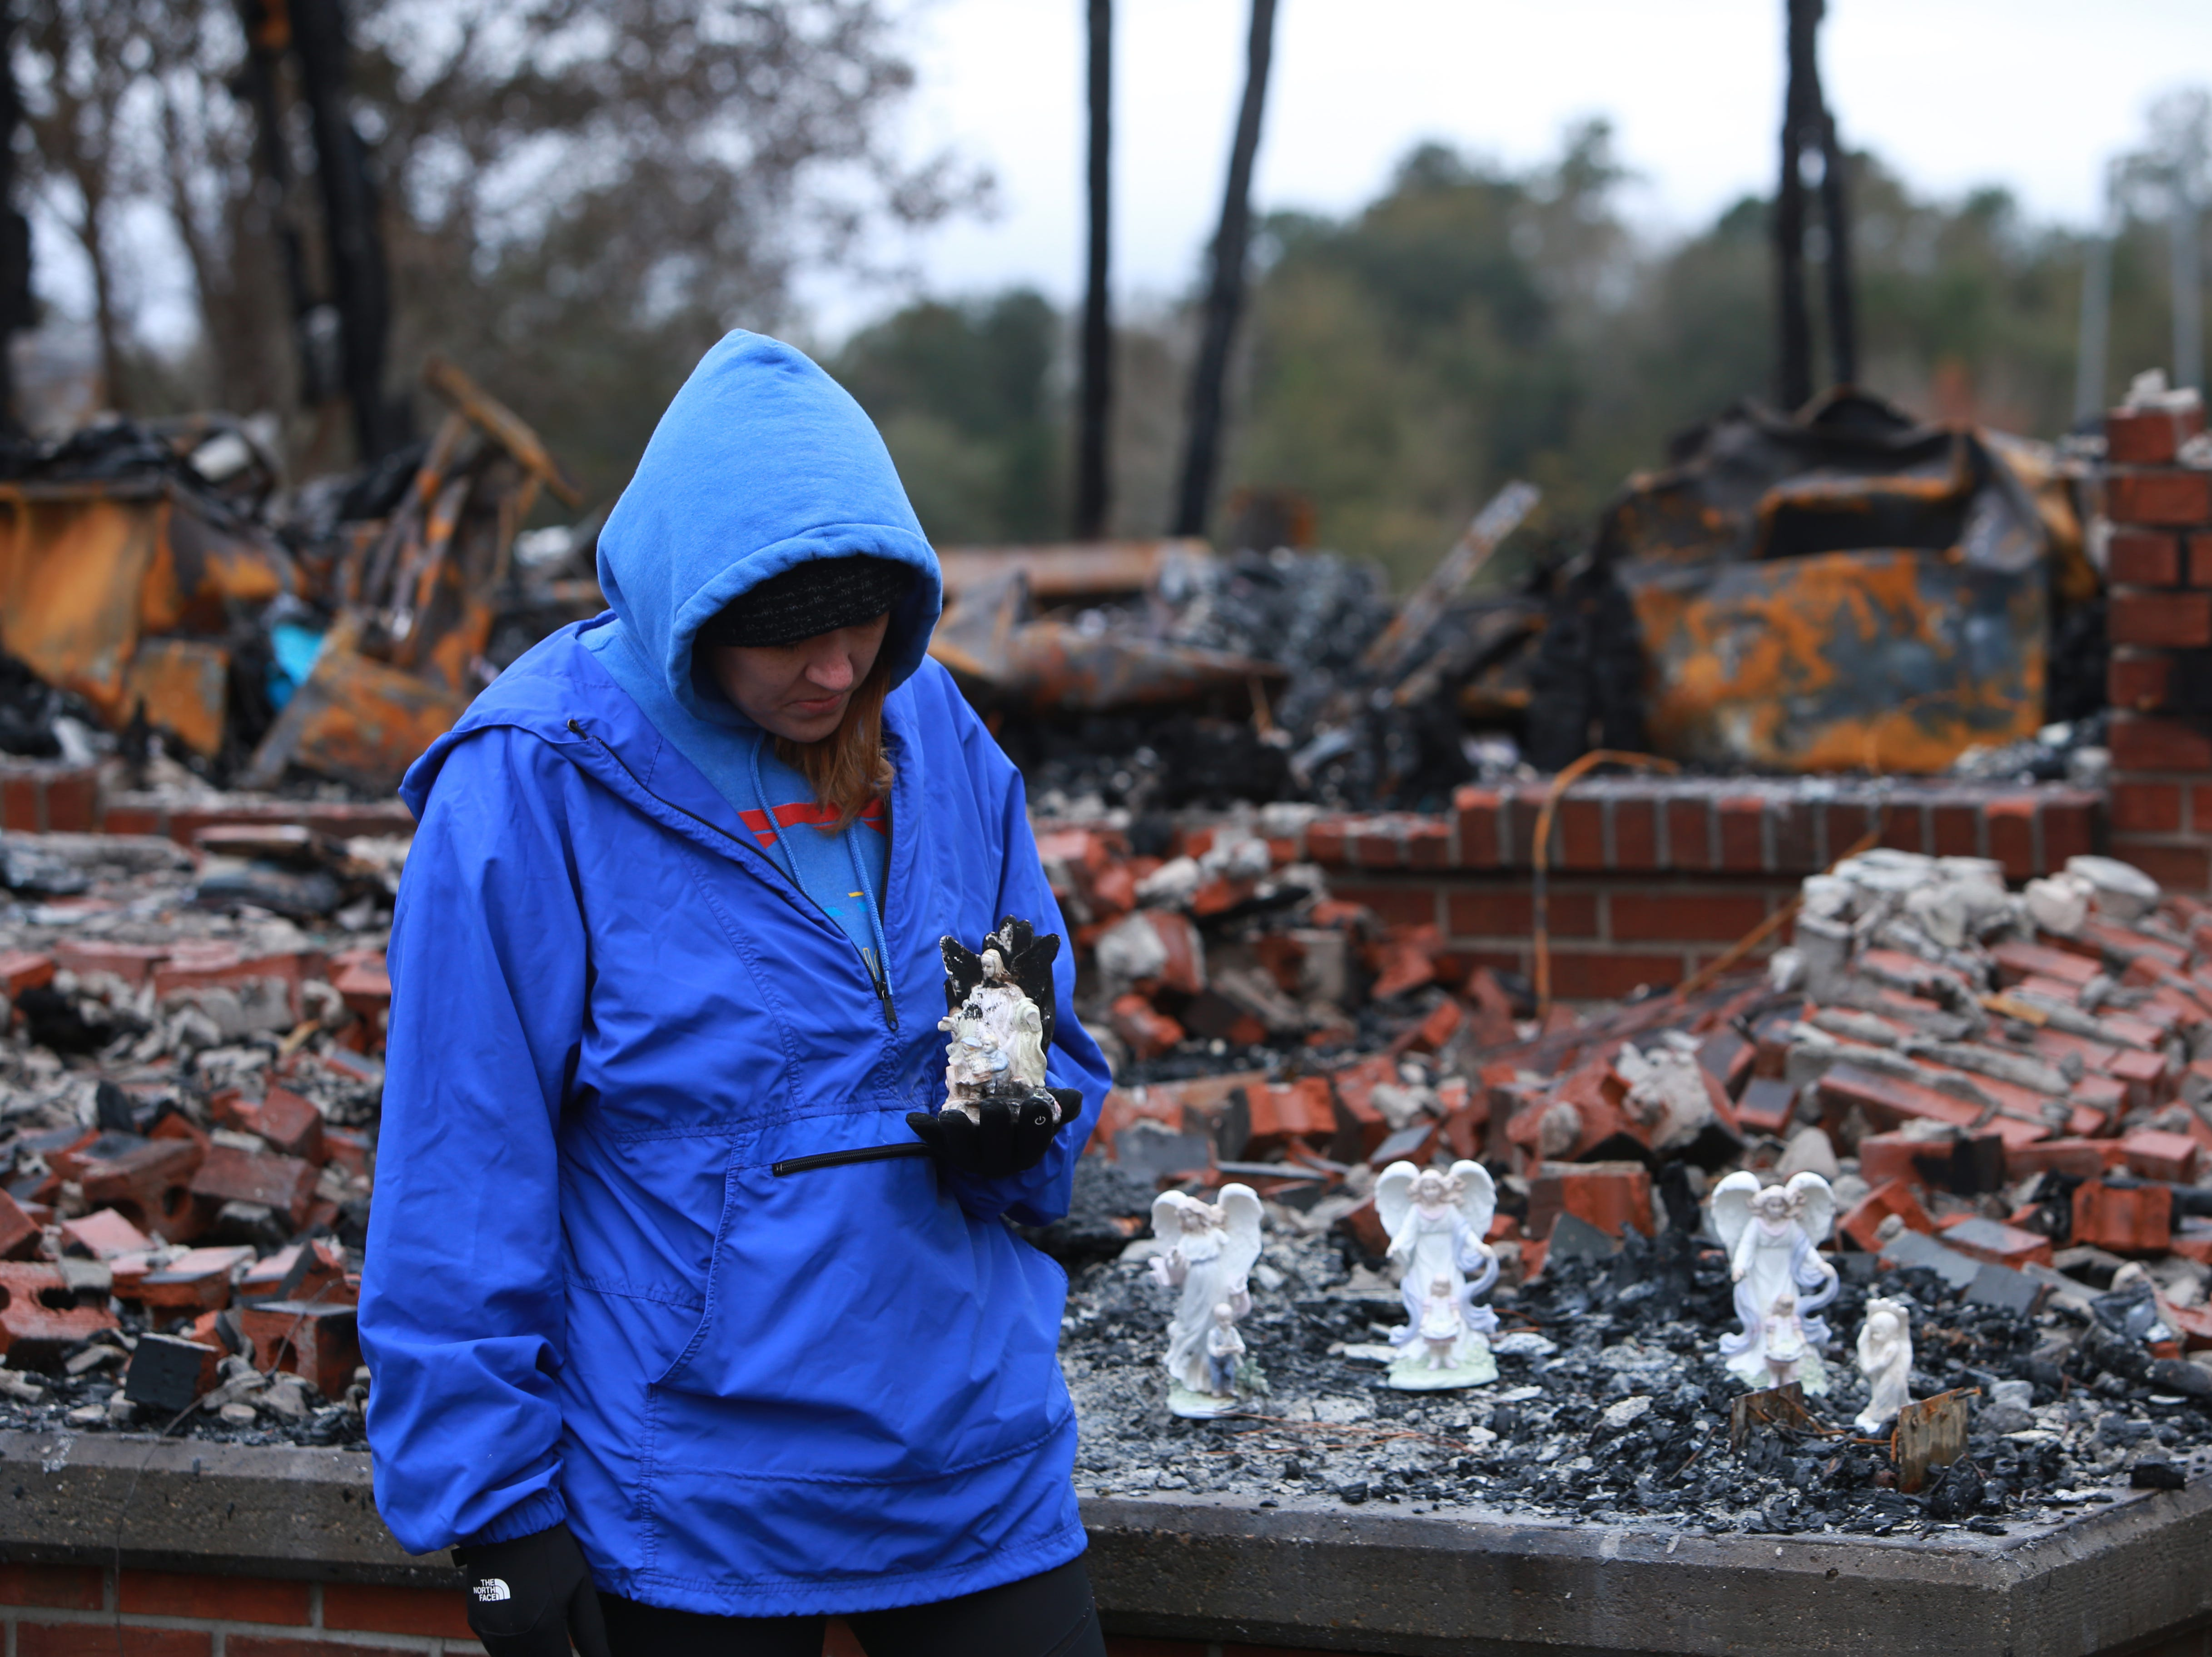 Leigh Haas, 30, holds an angel figurine that was burned but survived a fire that destroyed the Haas family's 6500 square-foot home in Kiln, Mississippi on November 25, 2018.